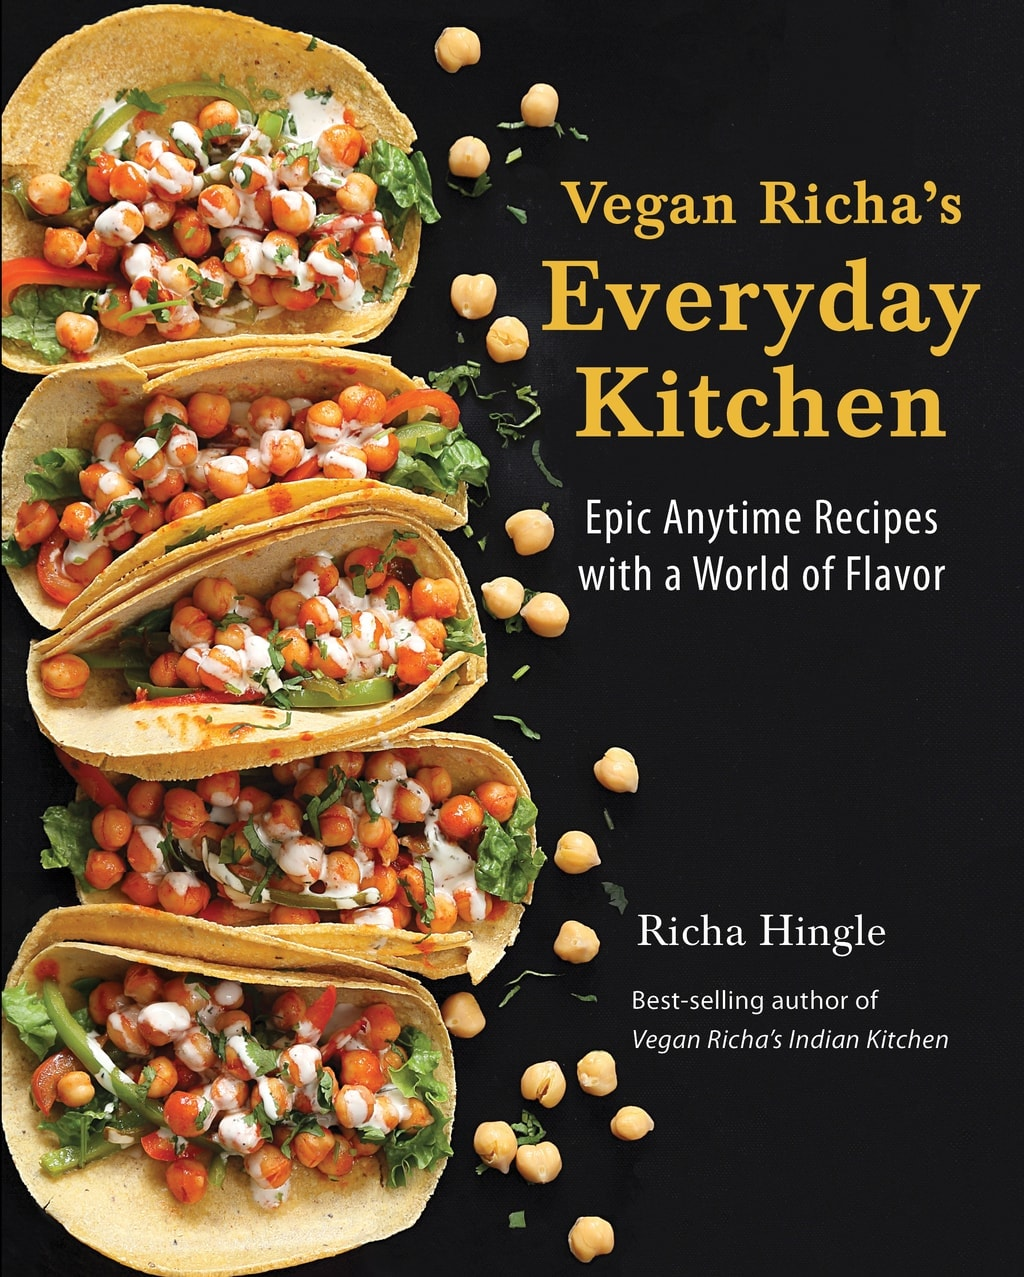 Cover from Vegan Richa's Everyday Kitchen